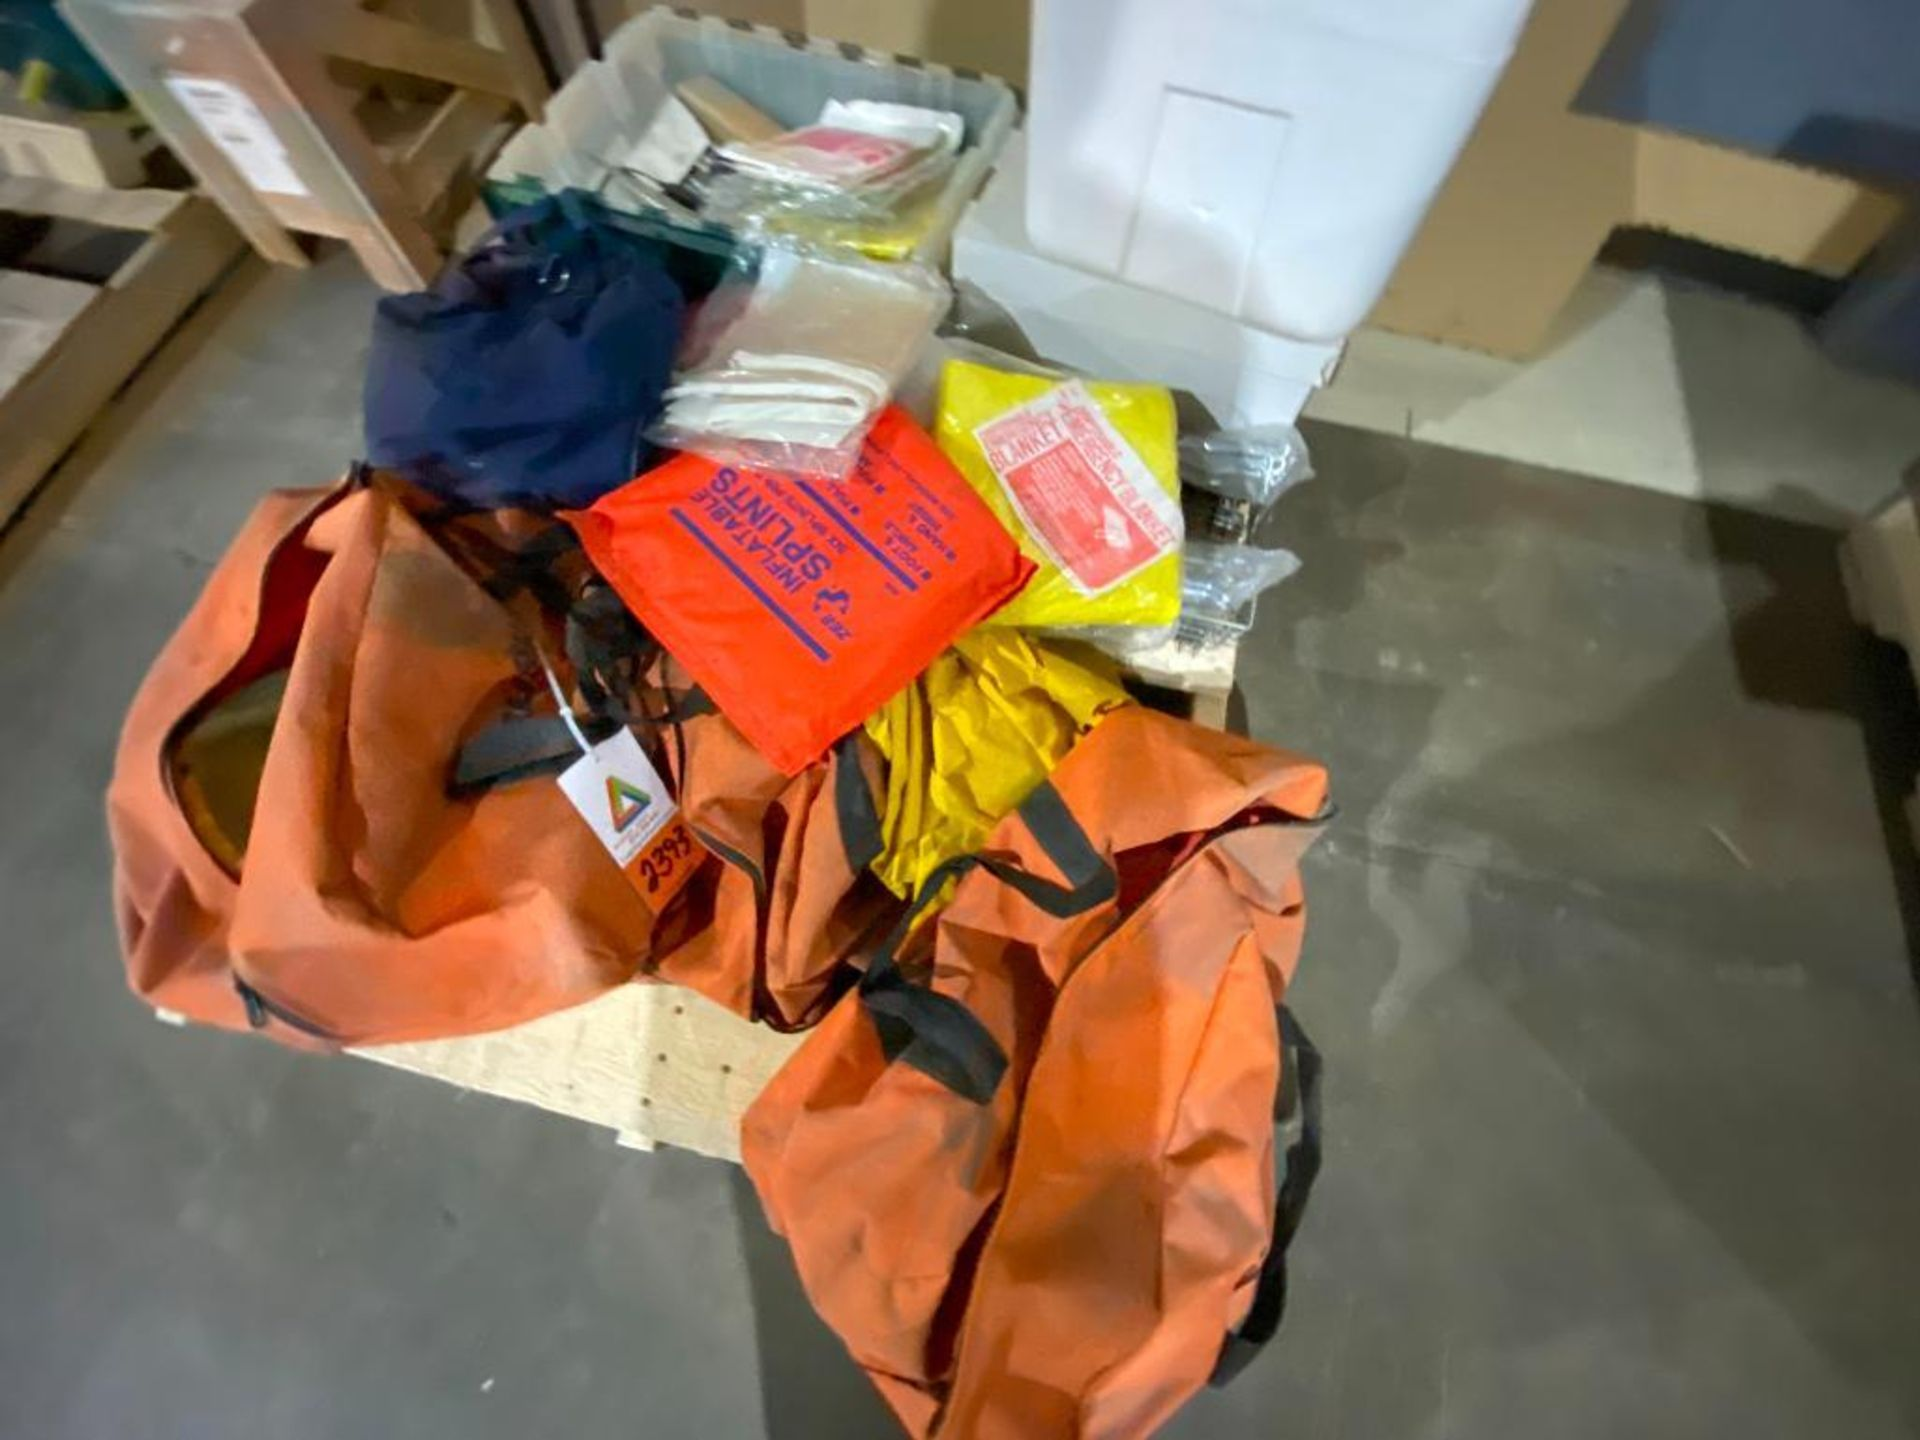 safety equipment - Image 5 of 6